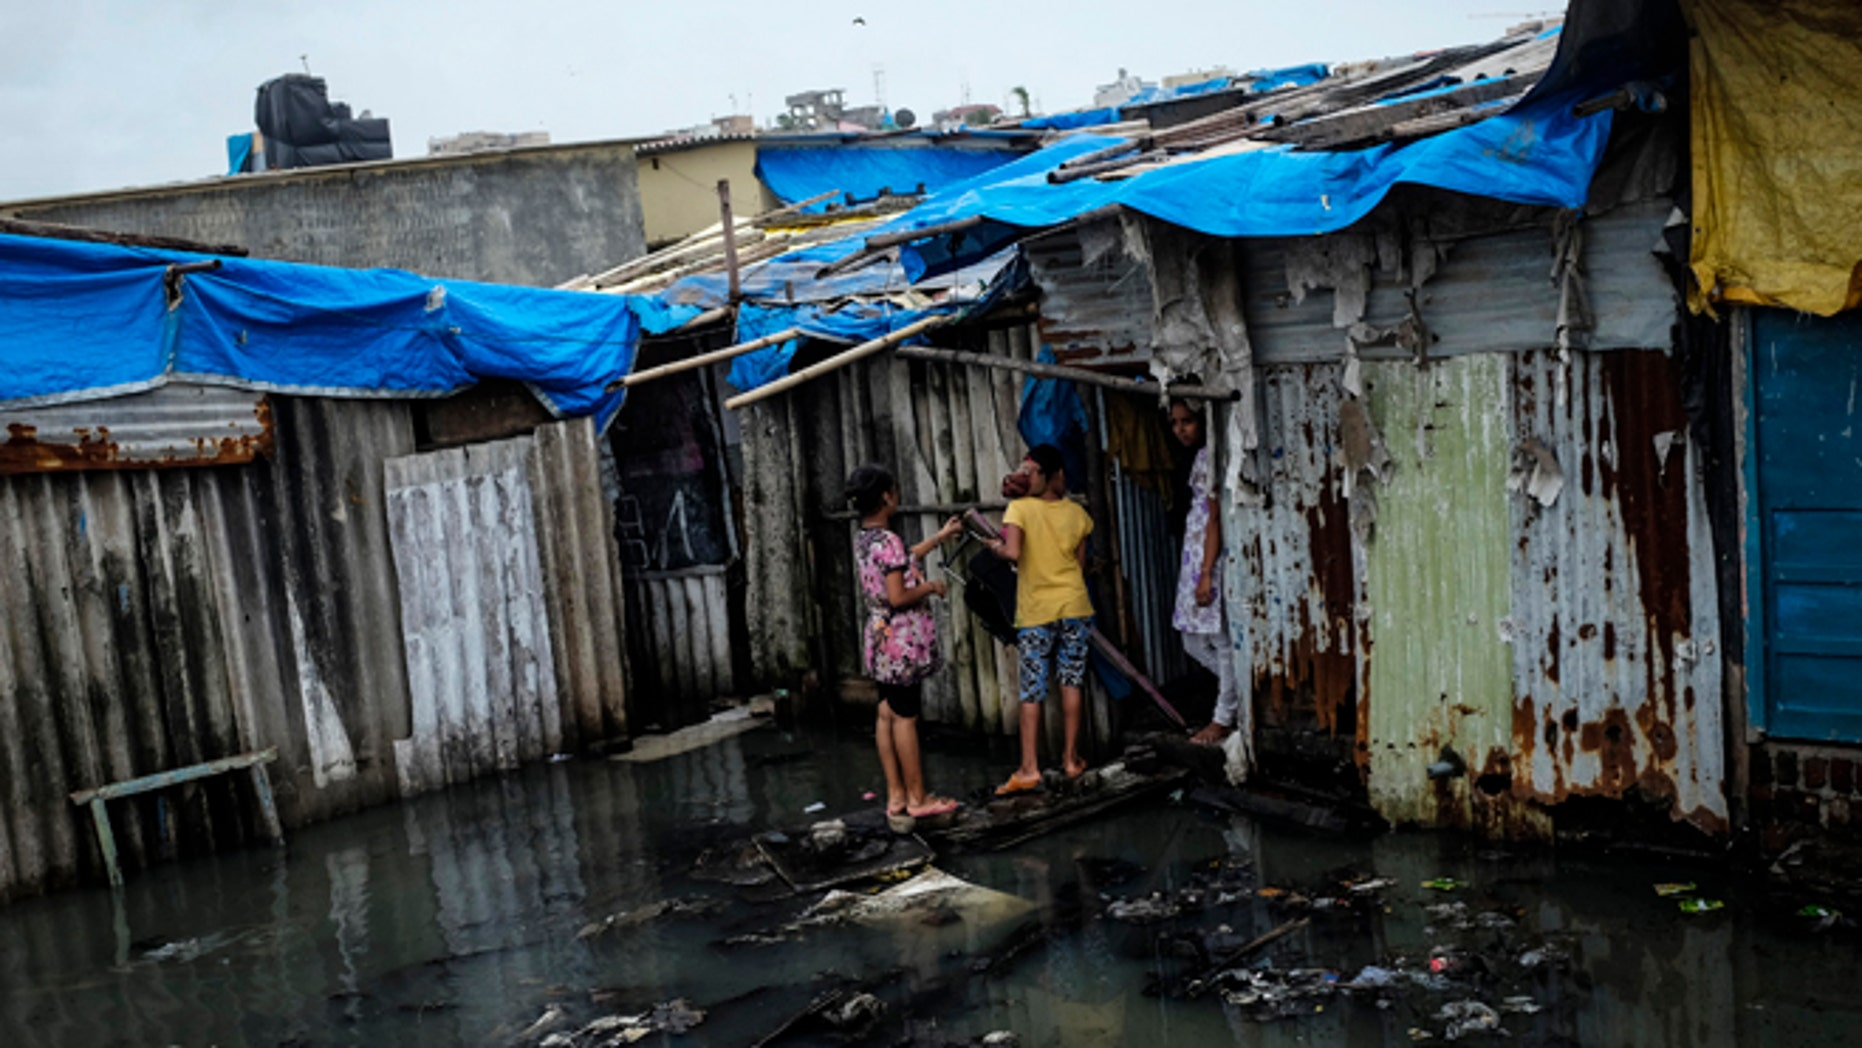 Residents stand in a flooded street outside their house at a slum in Mumbai July 16, 2014. Weak rainfall in India since the start June, when the monsoon season began, has raised concerns of a first drought in five years, although weather experts are hopeful rains will revive in the next week. REUTERS/Danish Siddiqui (INDIA - Tags: SOCIETY ENVIRONMENT POVERTY) - RTR3YWFK